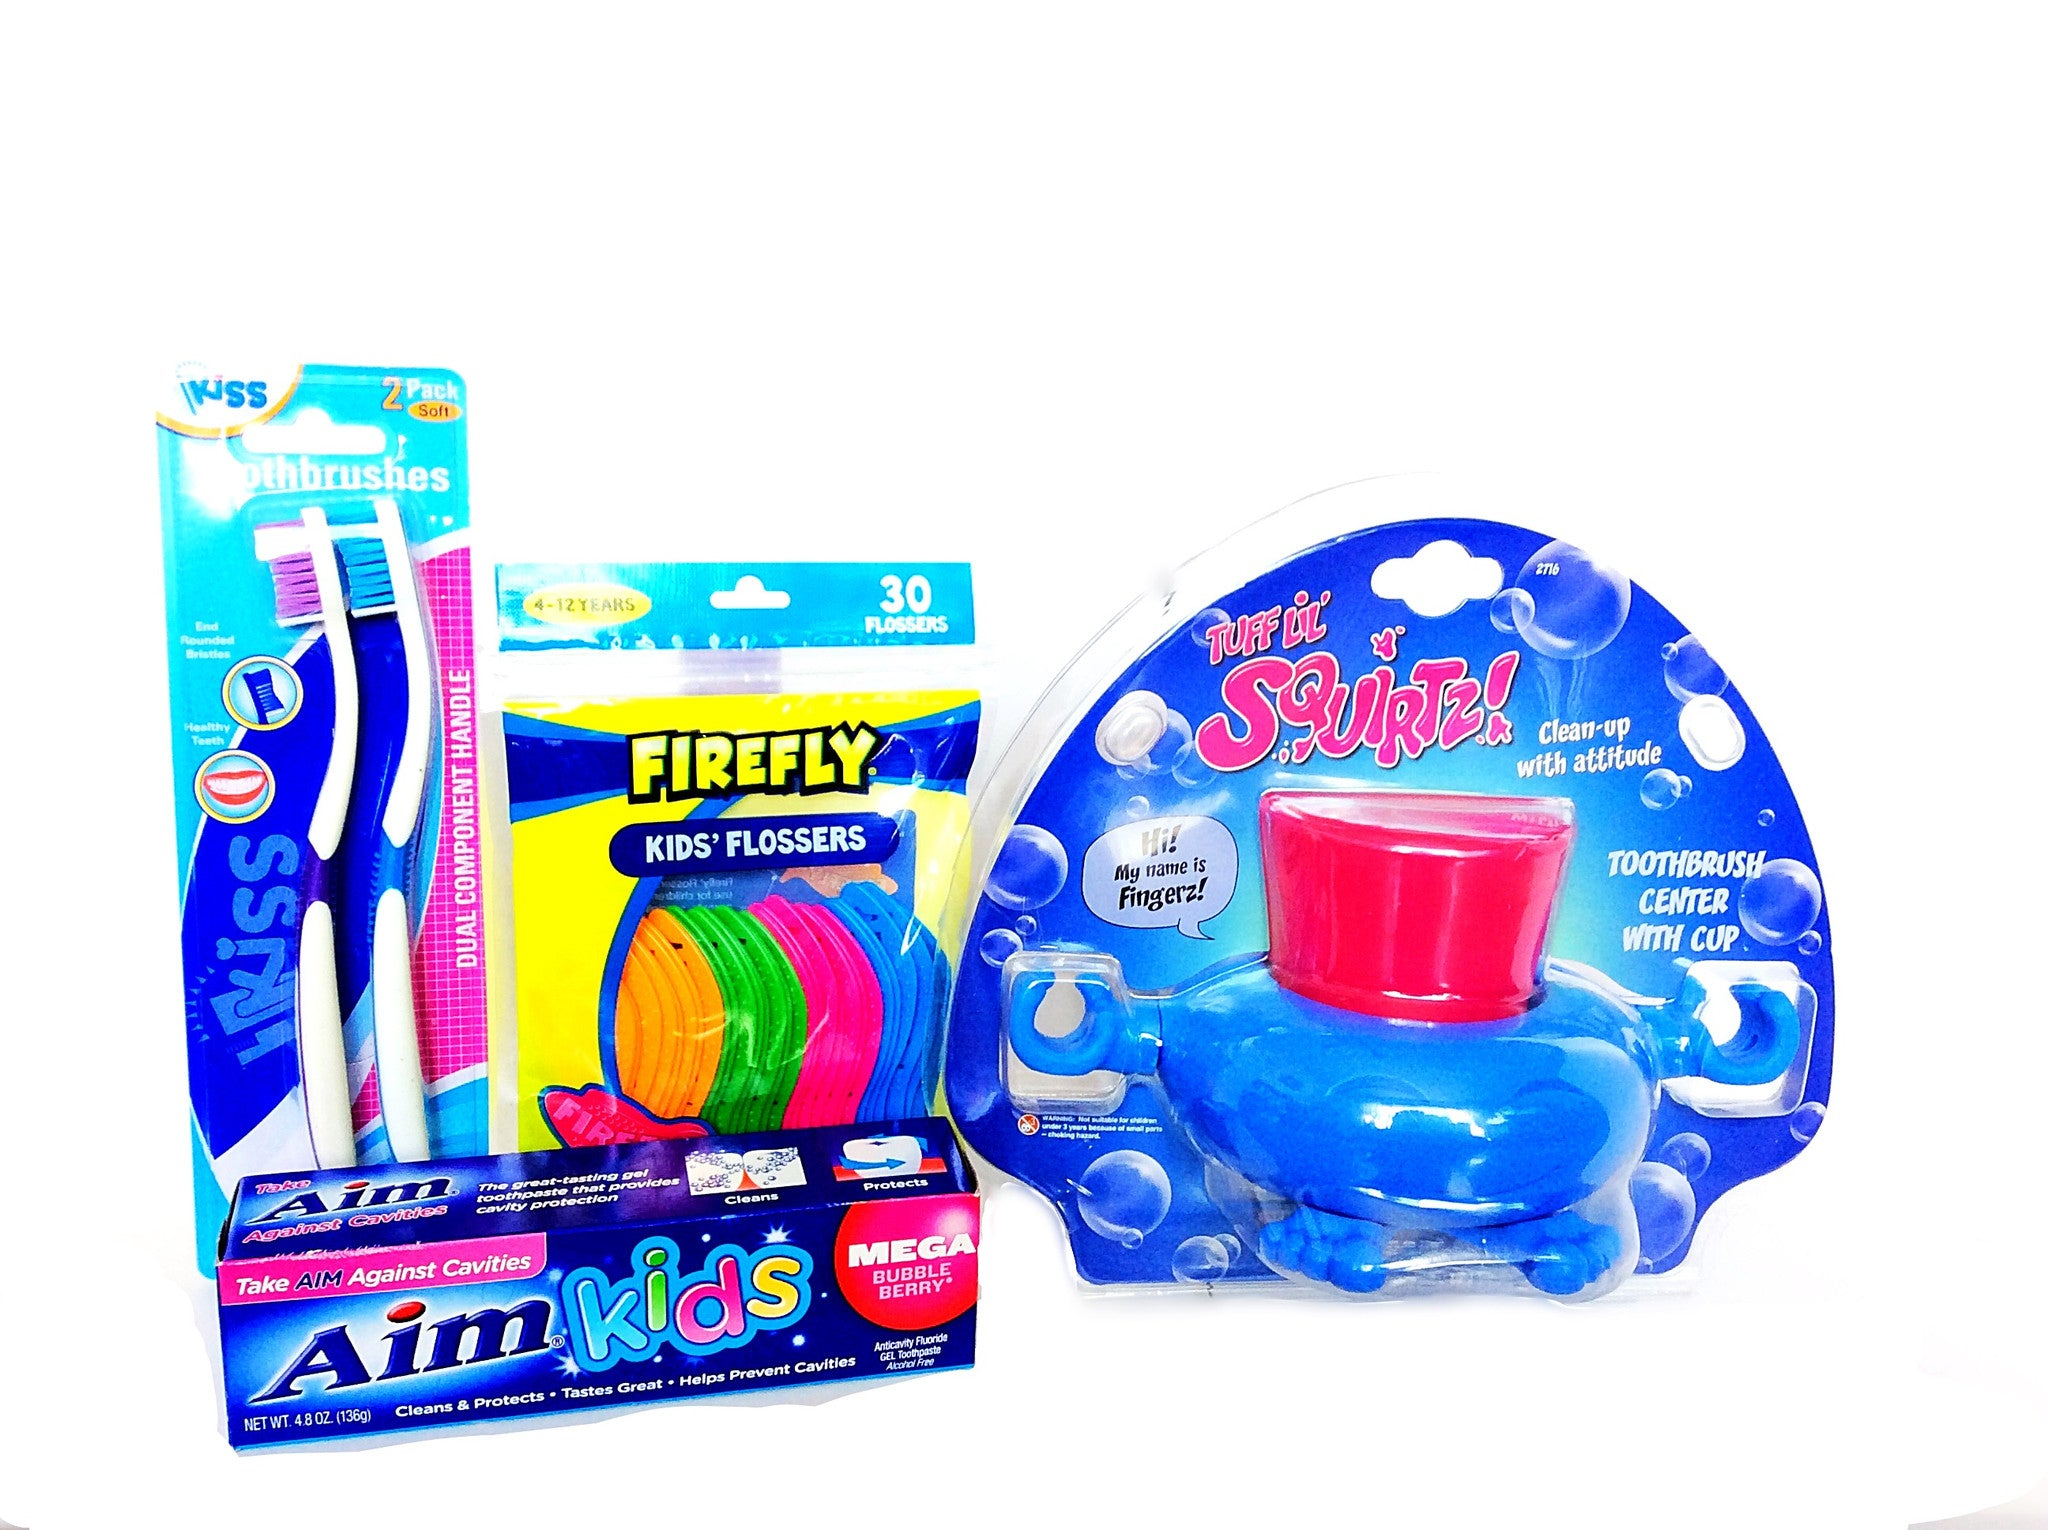 Tuff Lil Squirtz Tooth Brush Center Set - Little TroubleMakers | Kids Toys and Fashion